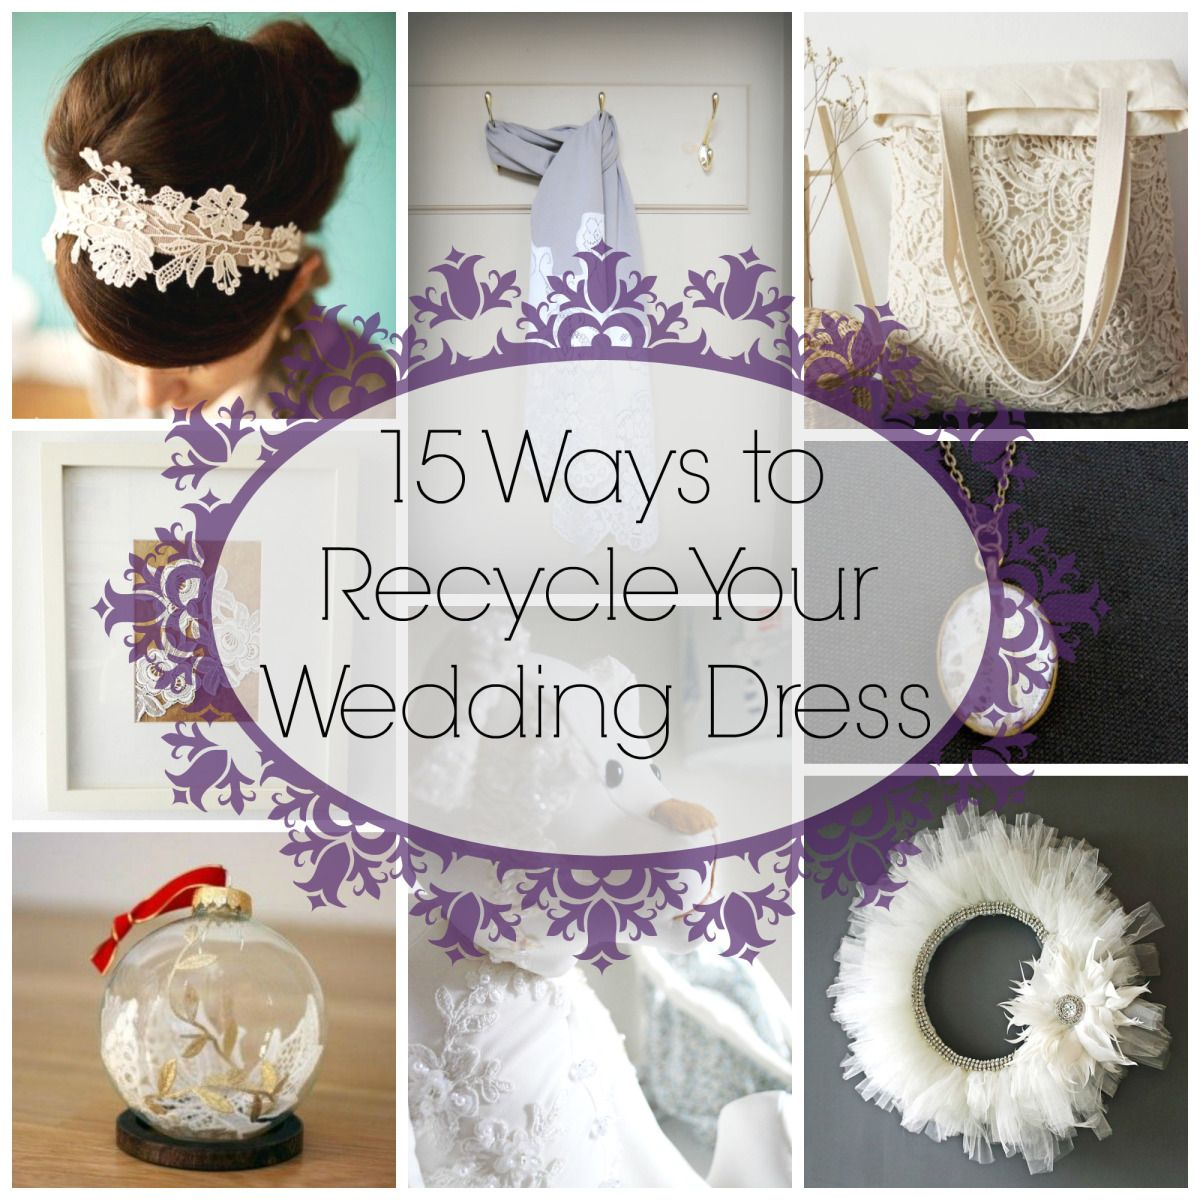 15 ways to recycle your wedding dress wedding glitter for Recycle wedding dress ideas